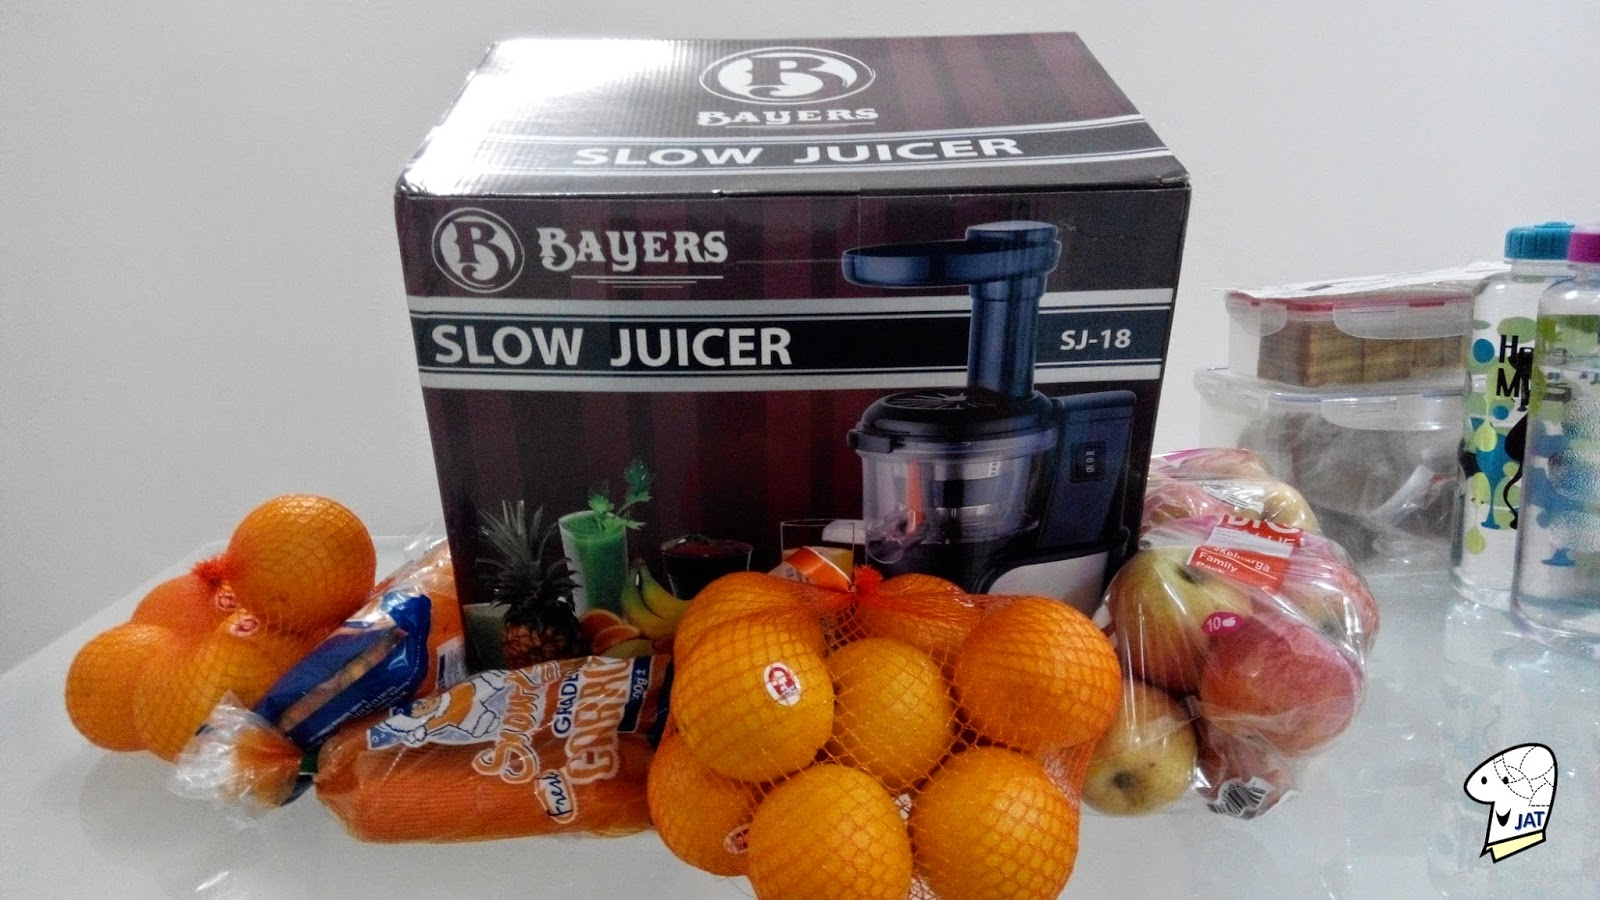 Bayers Dual Stage Slow Juicer, Box